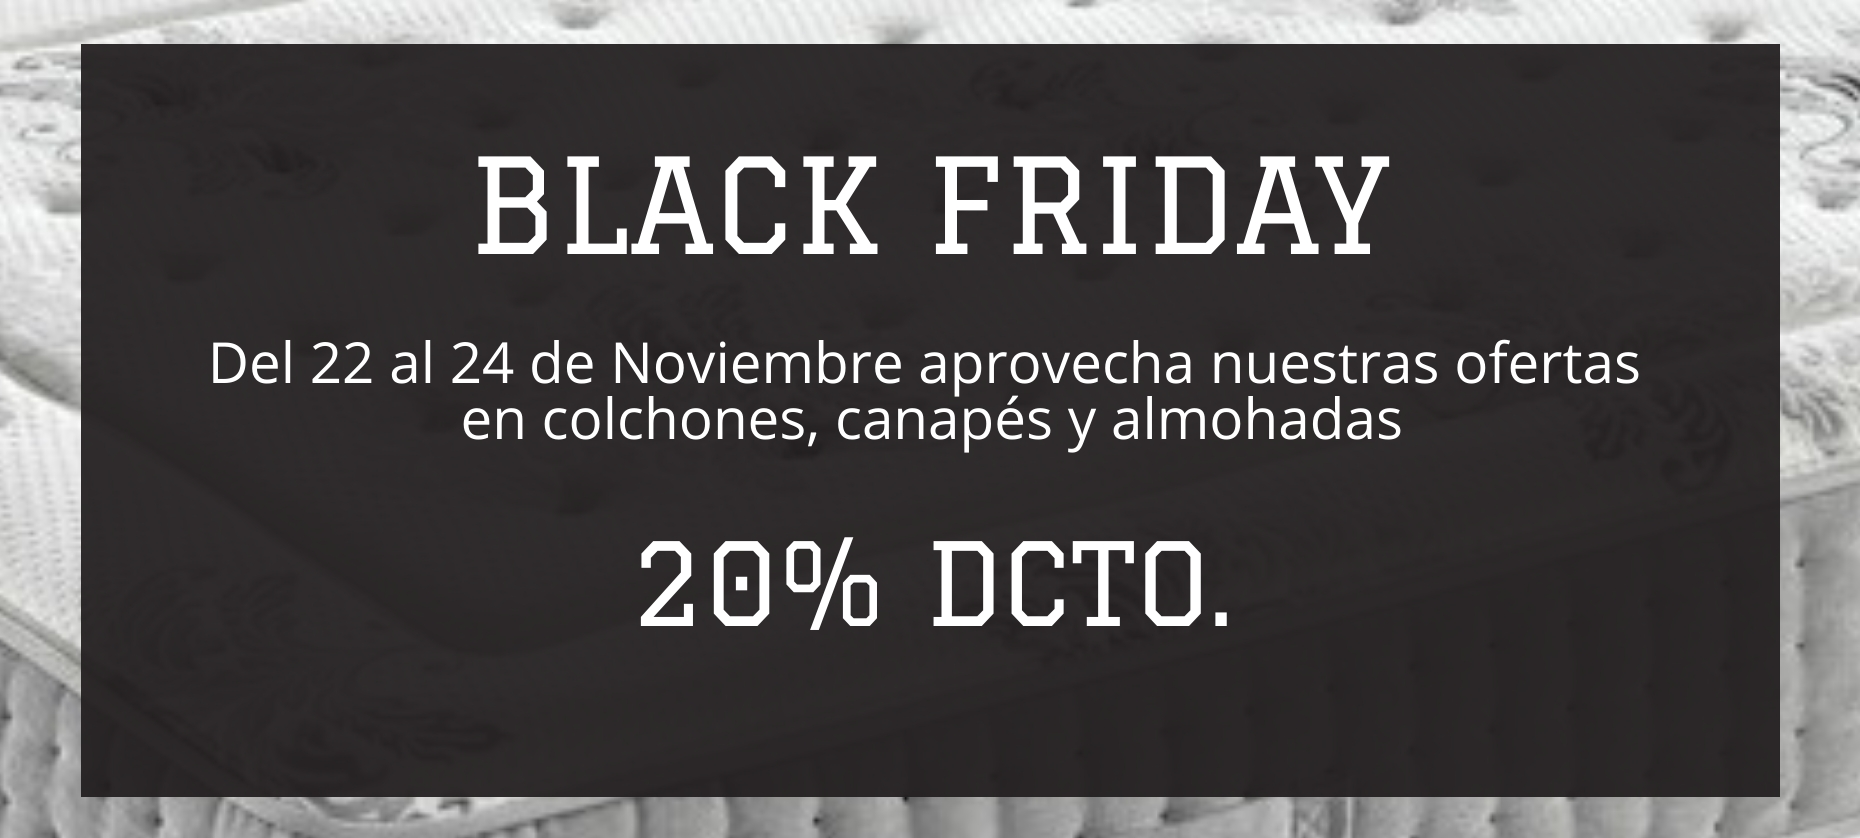 Canape Black Friday Black Friday Colchones Colchones Viscoelastica Latex Y Gel